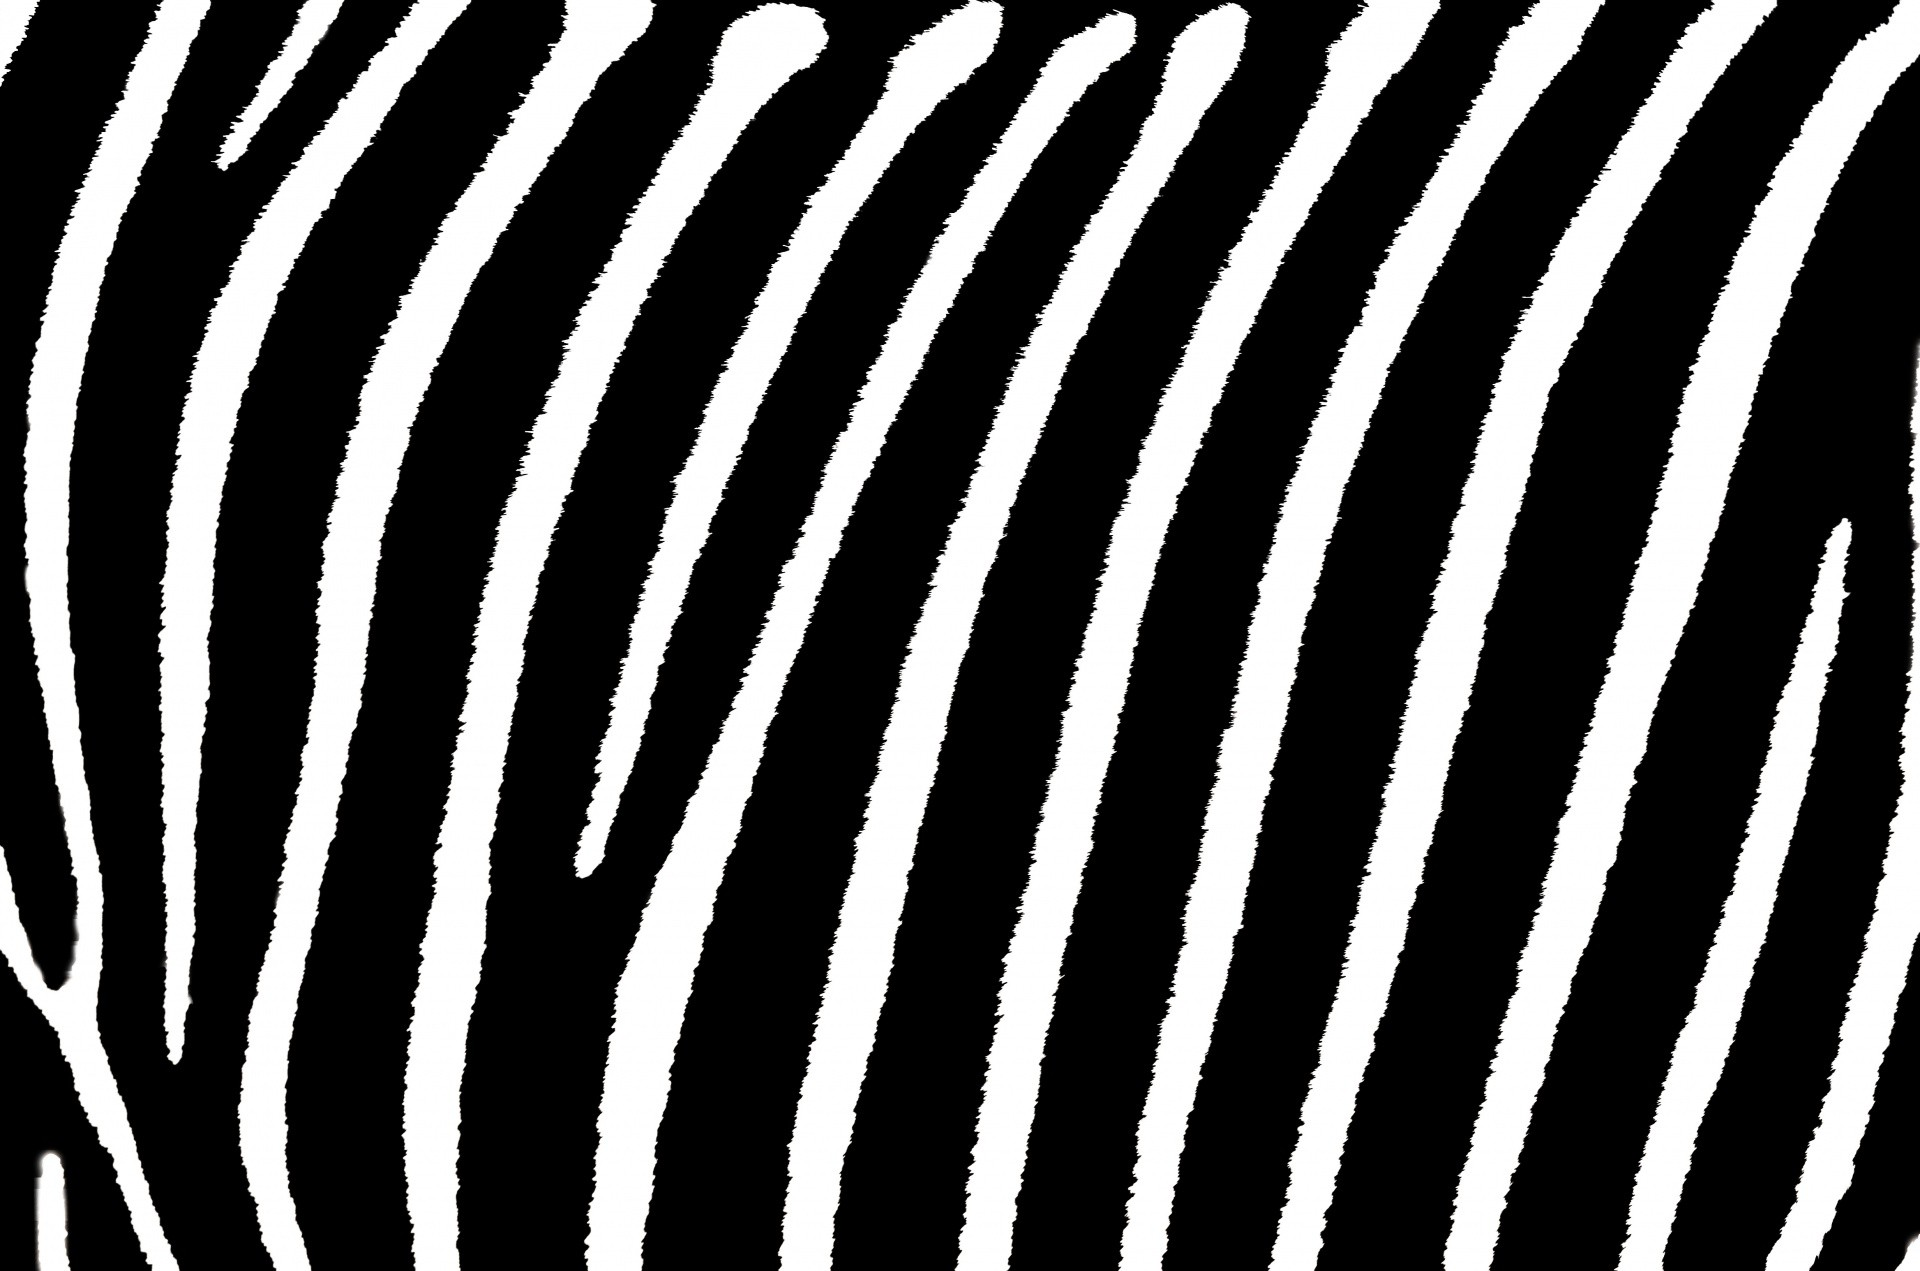 Neon Animal Print Wallpaper Zebra Background 183 ① Download Free Stunning Hd Wallpapers